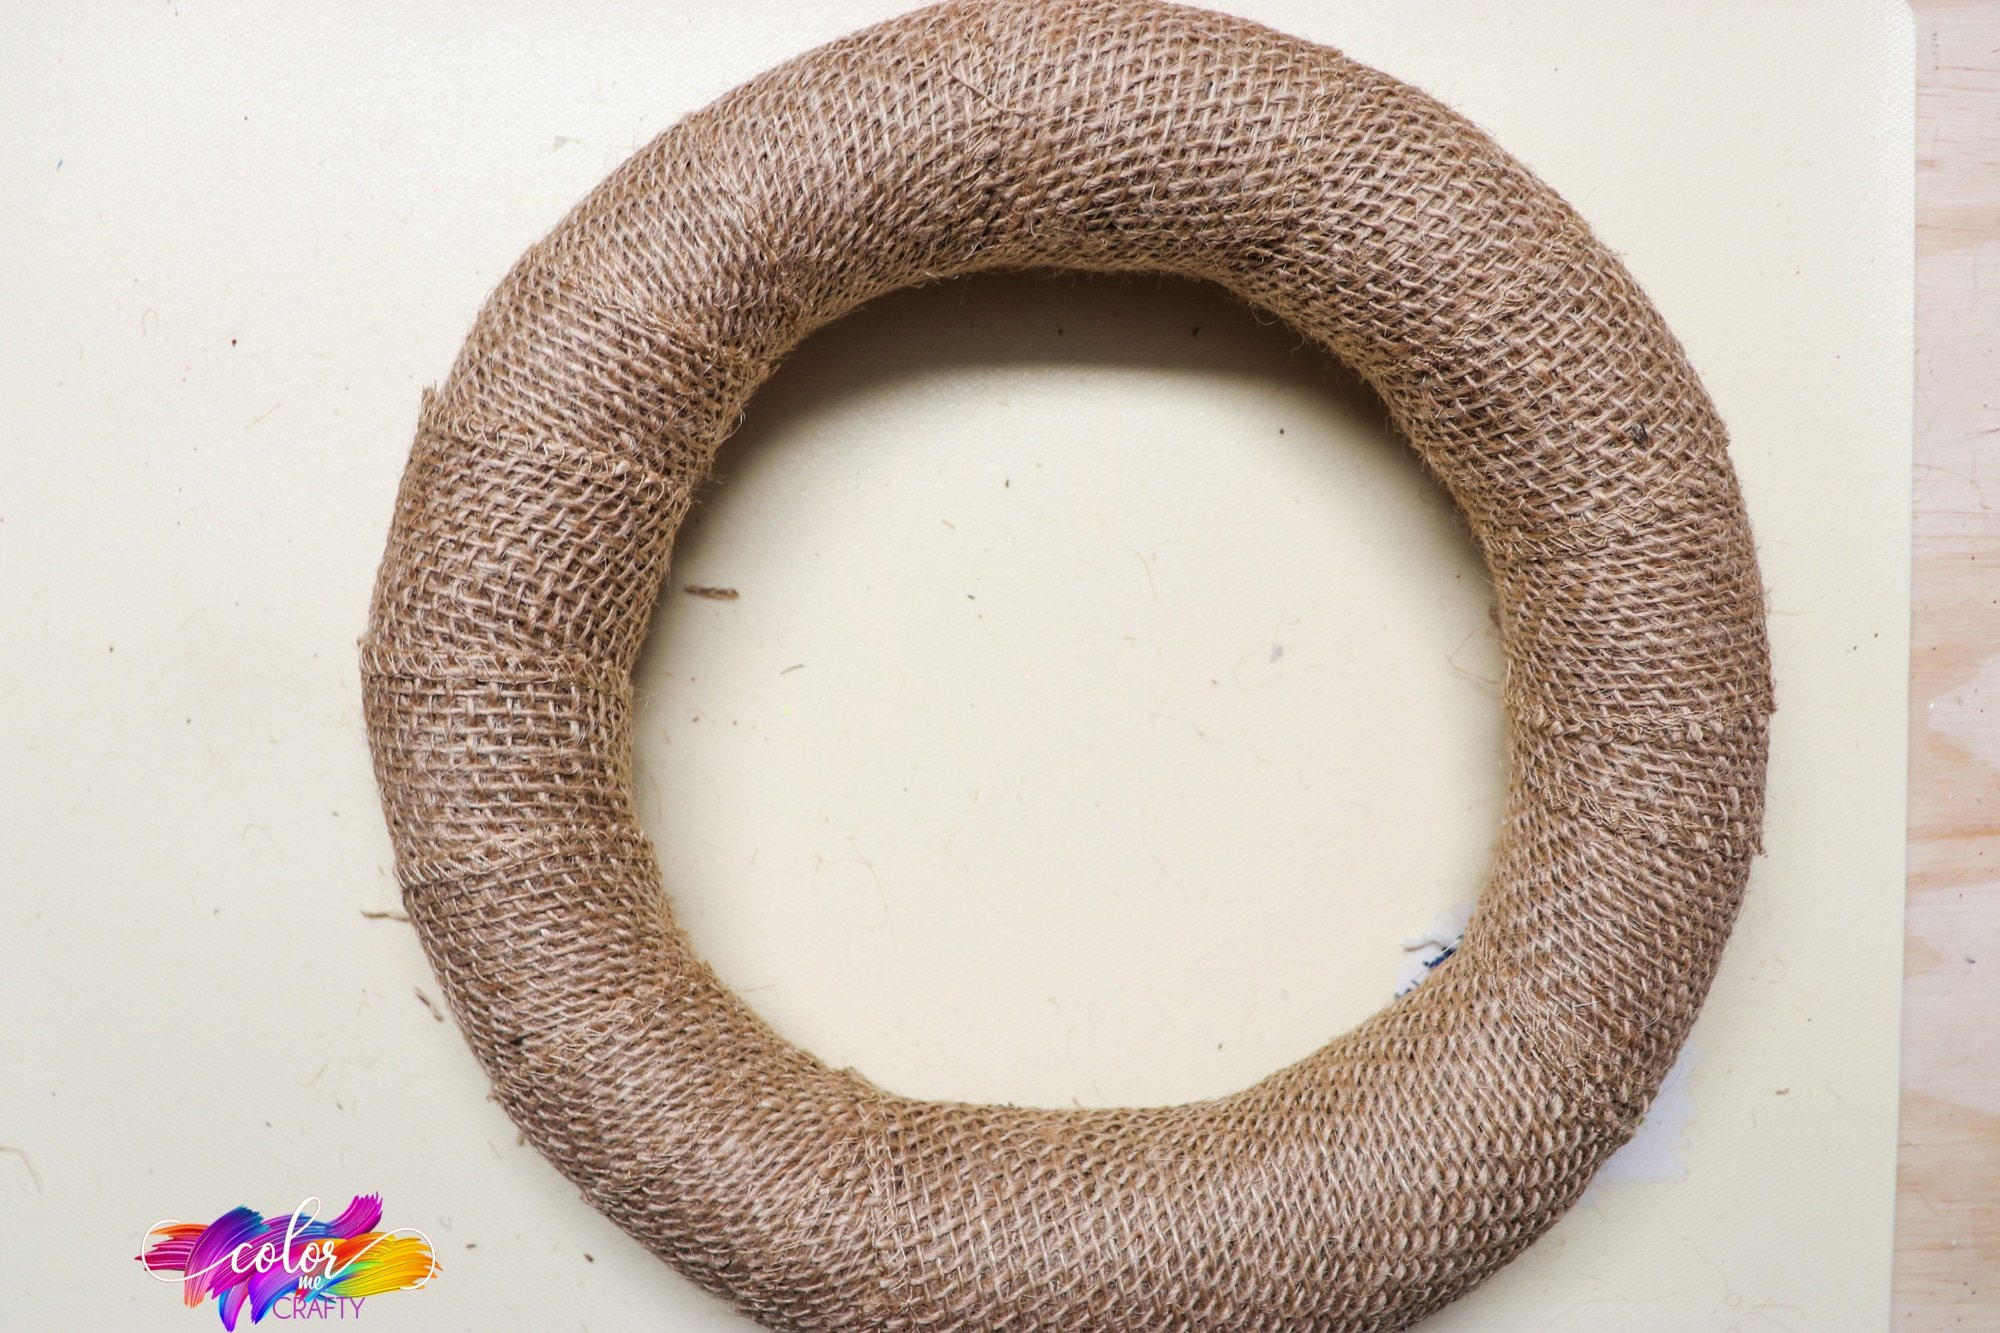 burlap ribbon wrapped around a wreath form